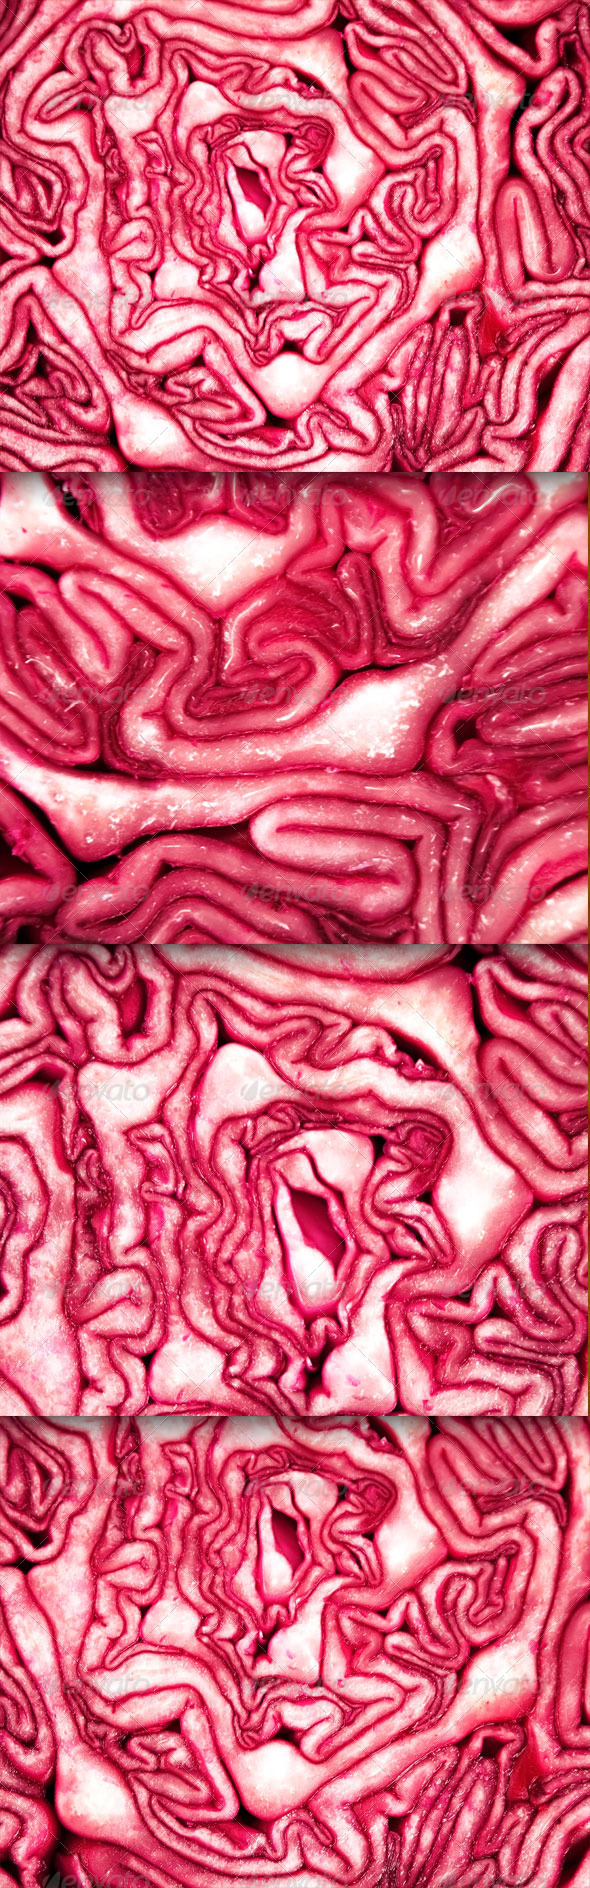 Red Cabbage - Miscellaneous Textures